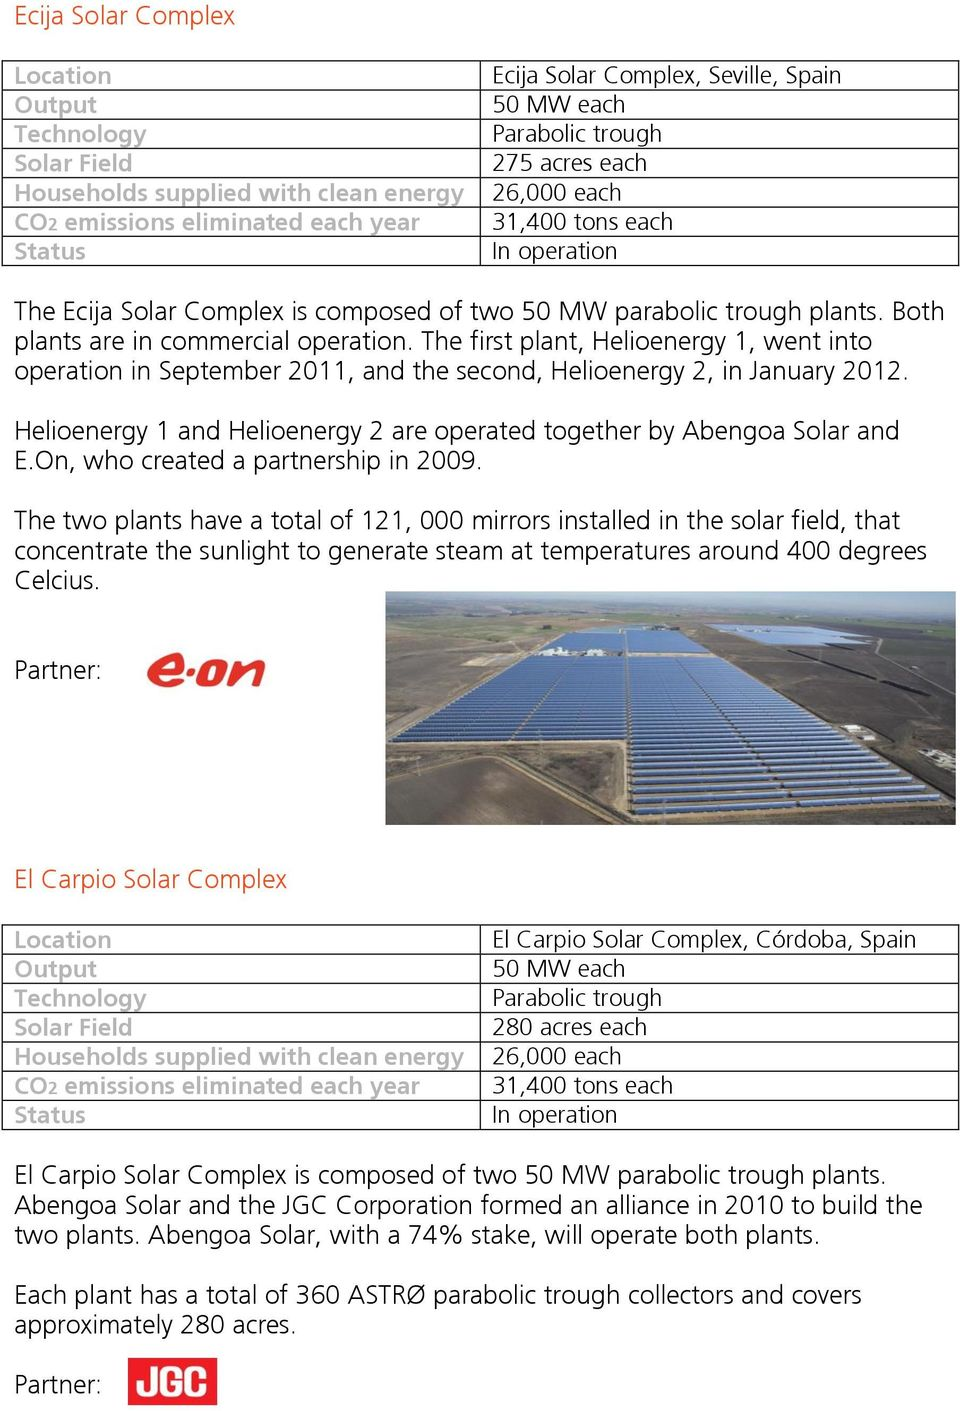 Helioenergy 1 and Helioenergy 2 are operated together by Abengoa Solar and E.On, who created a partnership in 2009.